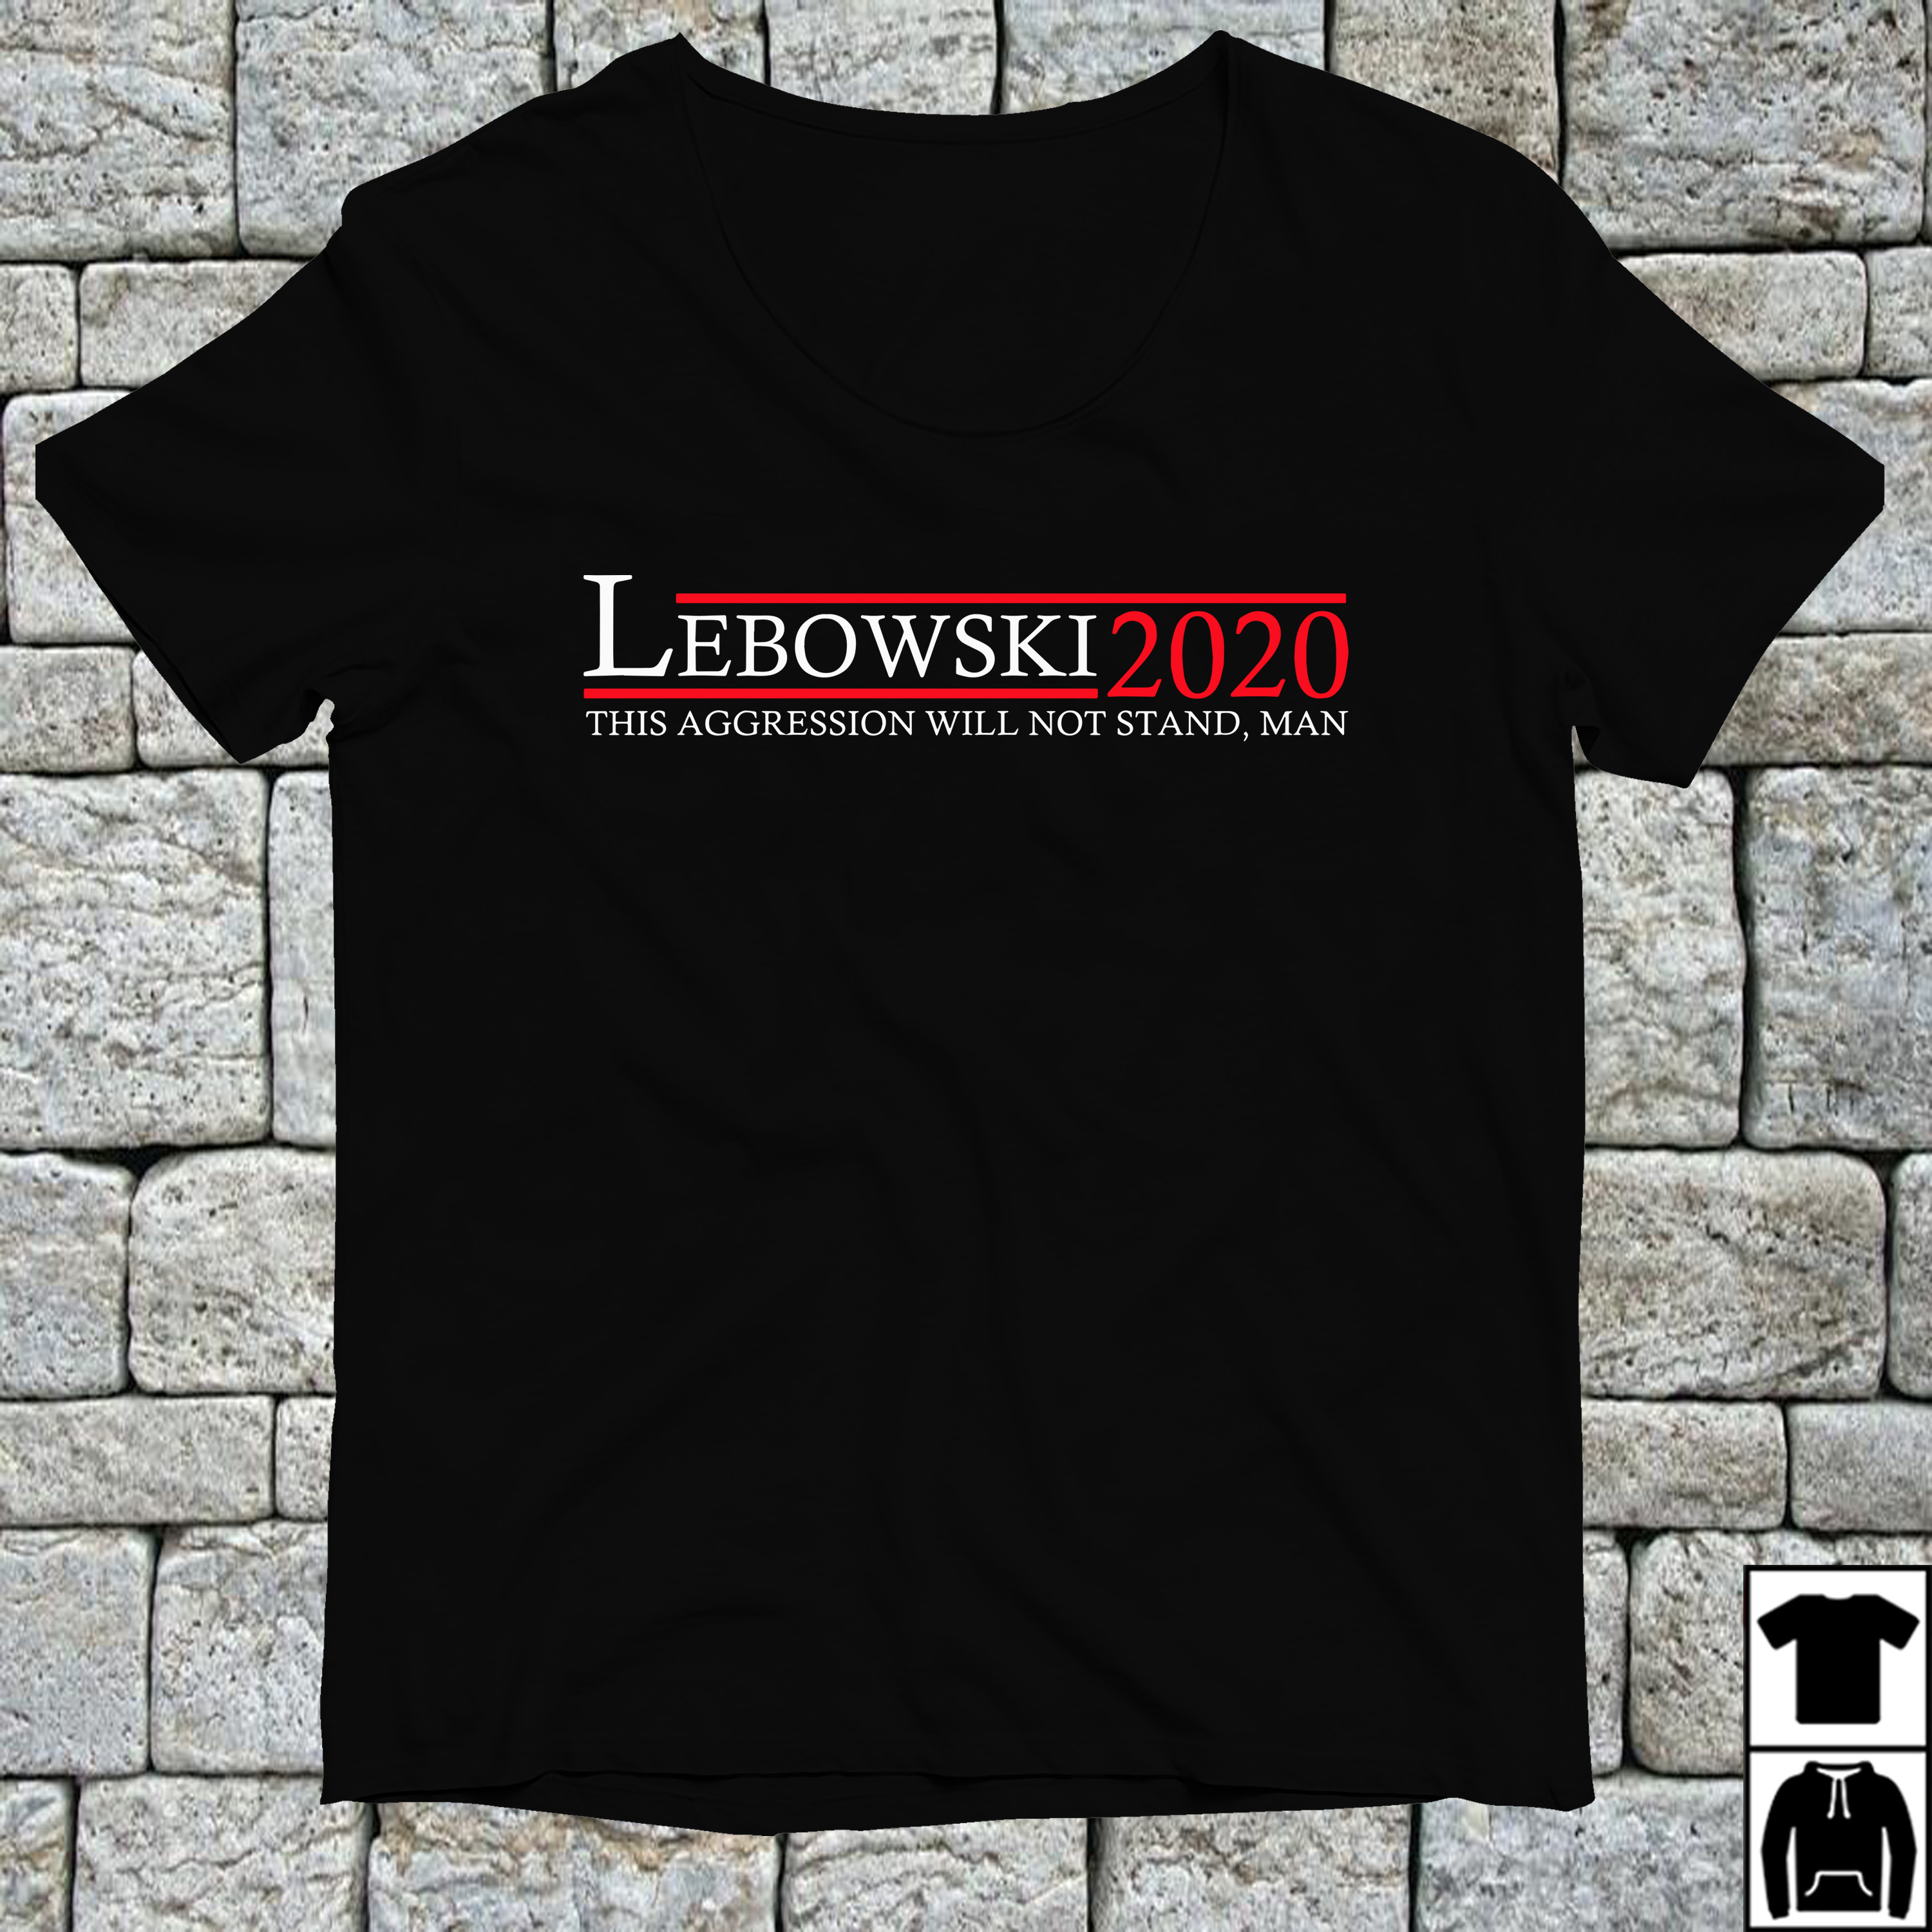 Lebowski 2020 this aggression will not stand man shirt